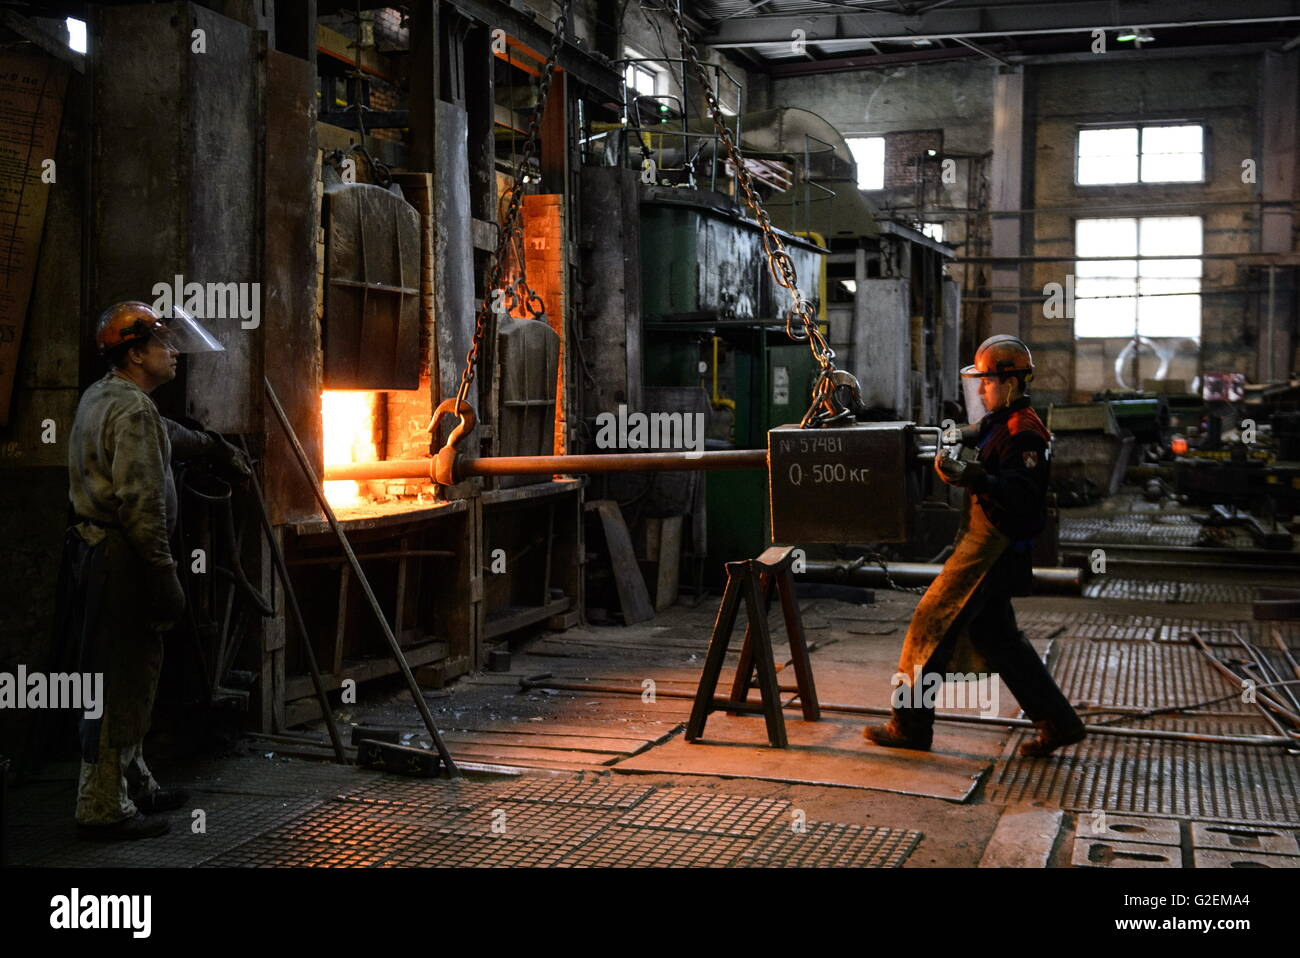 YEKATERINBURG, RUSSIA - MAY 20, 2016: Workers in a forging shop. Ural Turbine Works is a power machine-building - Stock Image